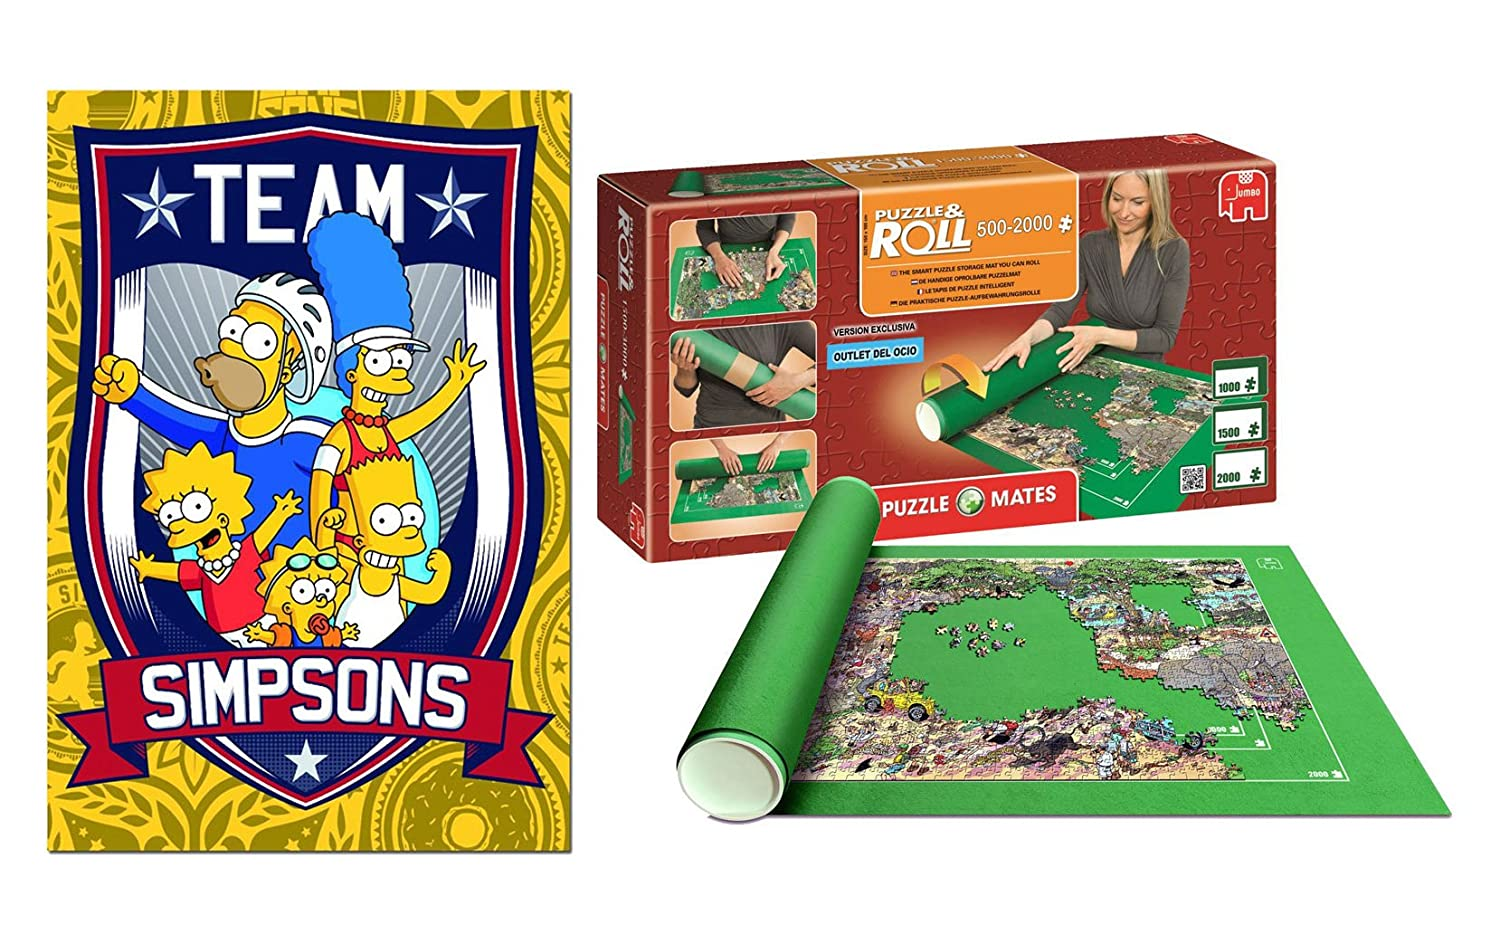 Pack Puzzle Educa 15194. Los Simpsons. 500 piezas + Tapete universal Puzzle Roll 2000 piezas. https://amzn.to/2Twi6er